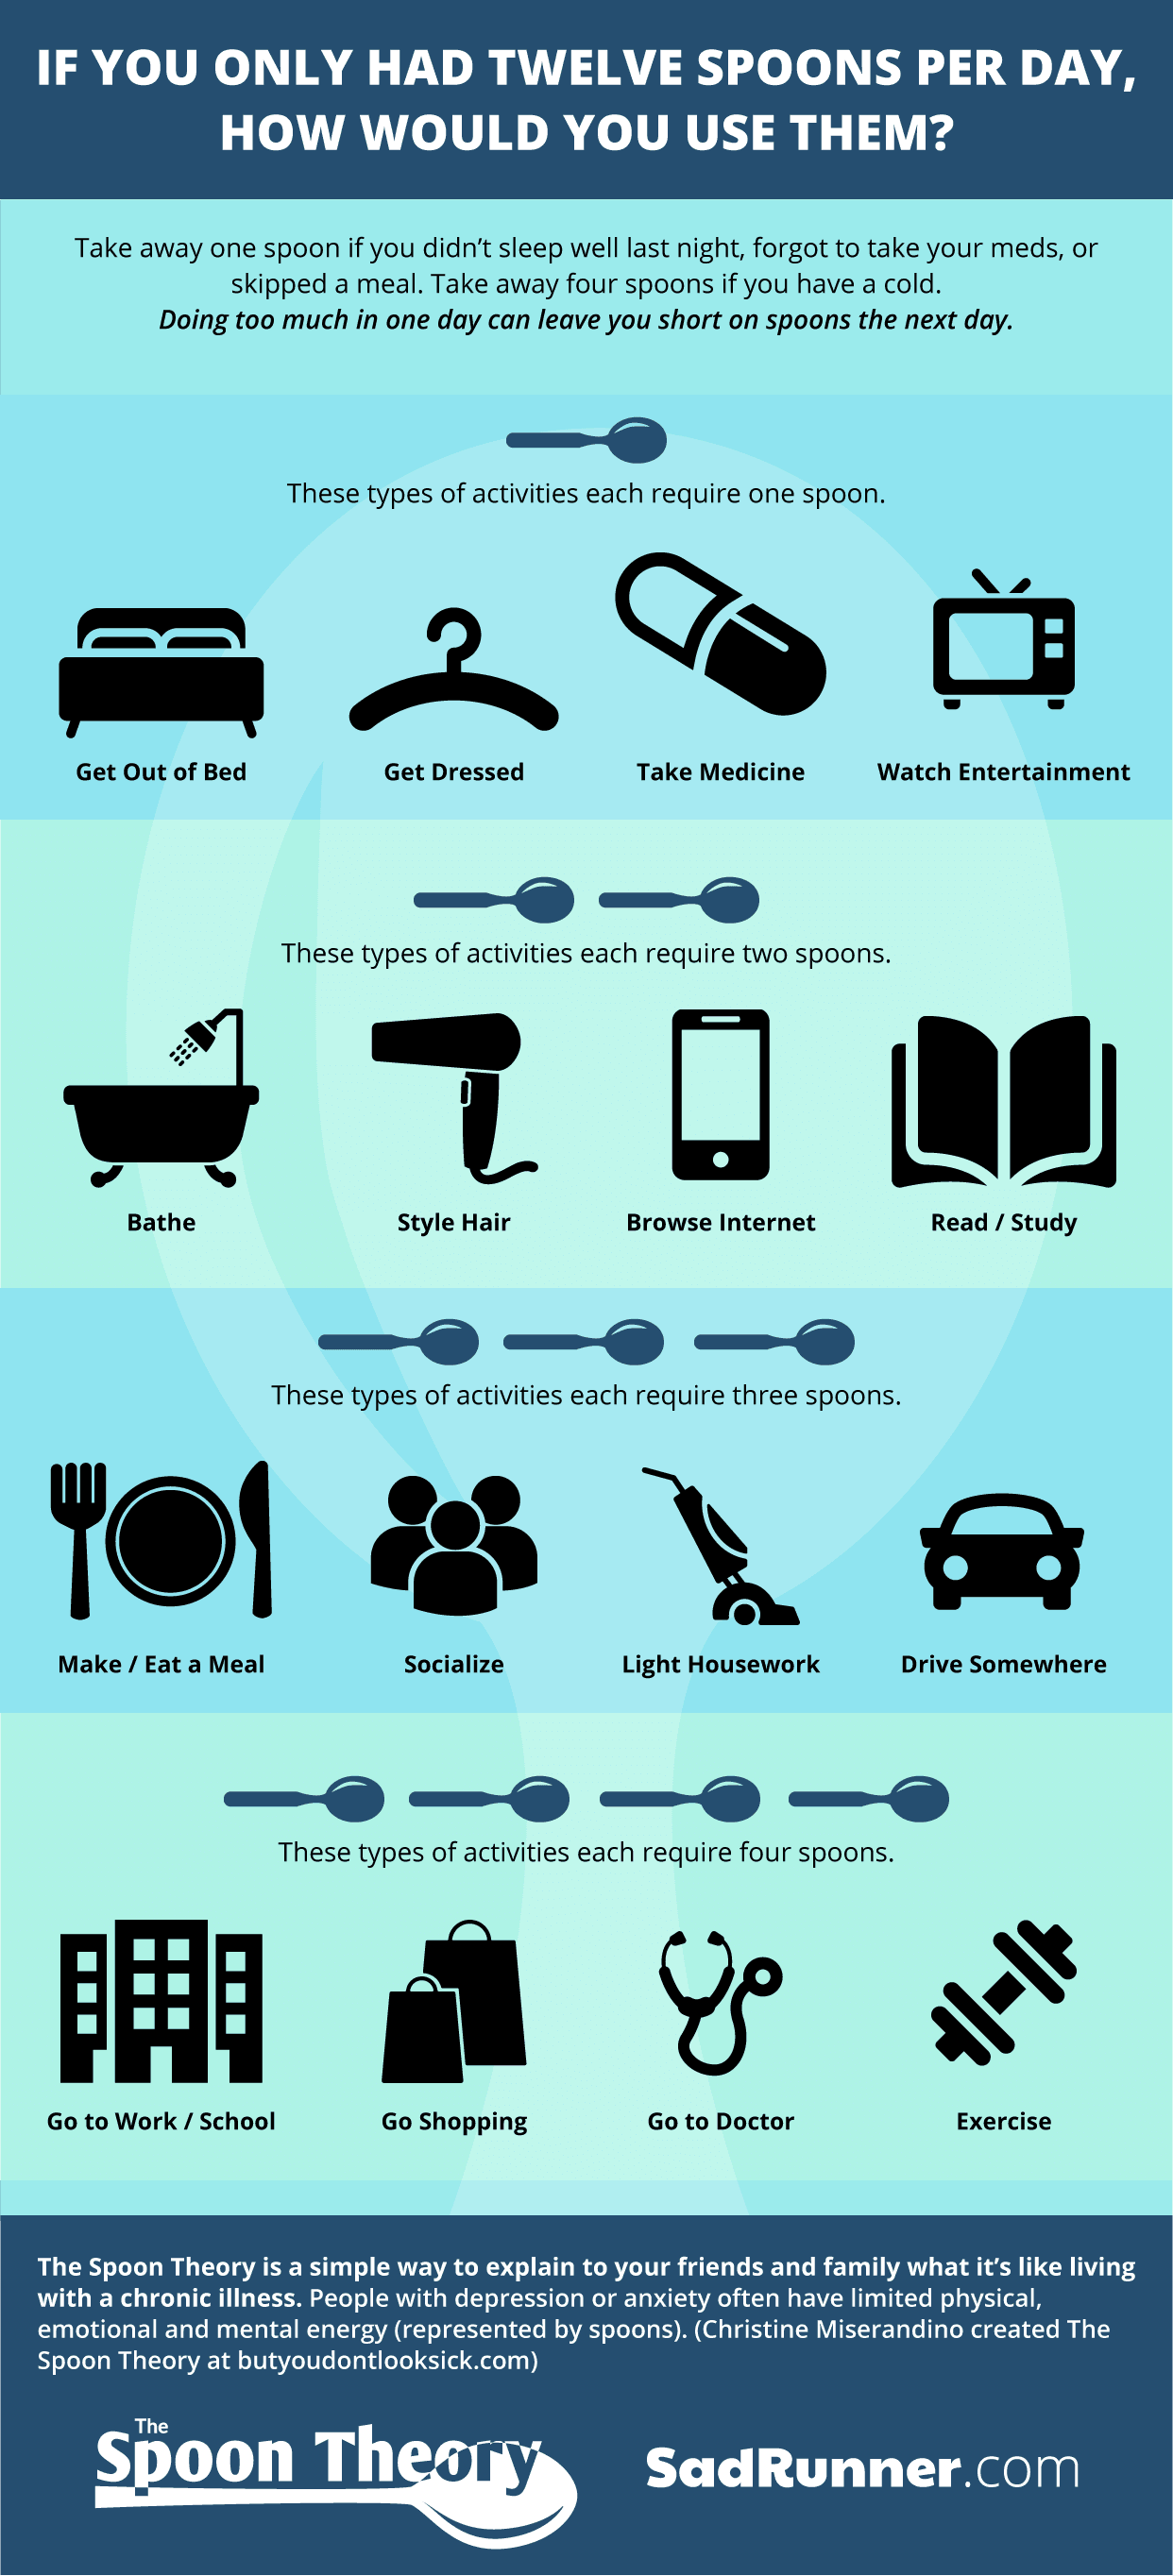 spoons-theory-sad-runner-infographic.png